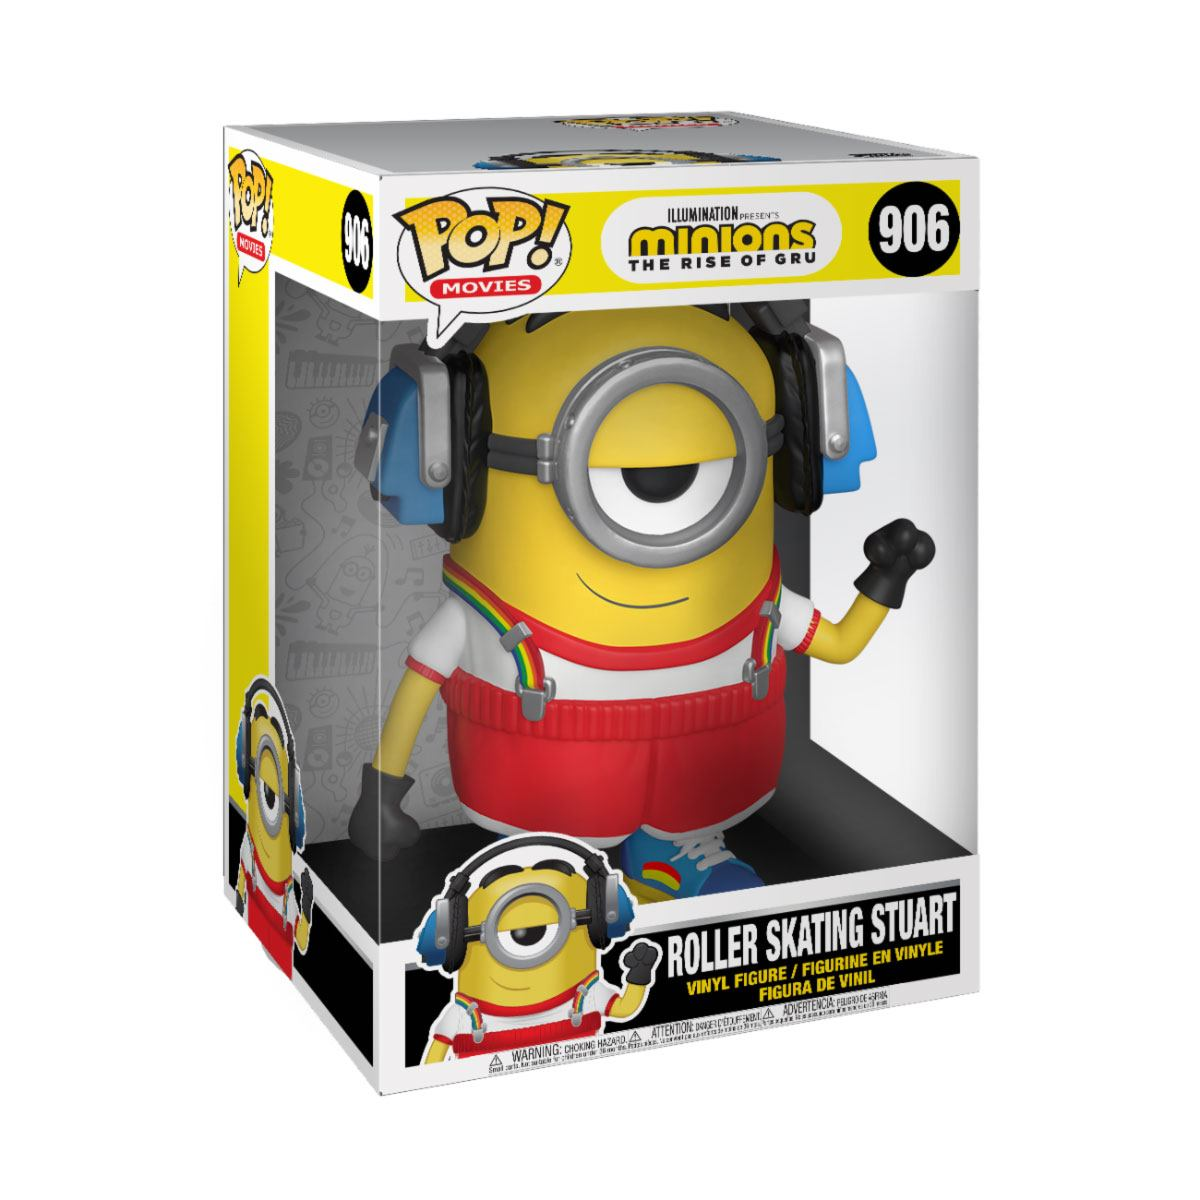 Minions II: The Rise of Gru Supersized POP! Movies Vinyl Figure Roller Skating Stuart 25 cm